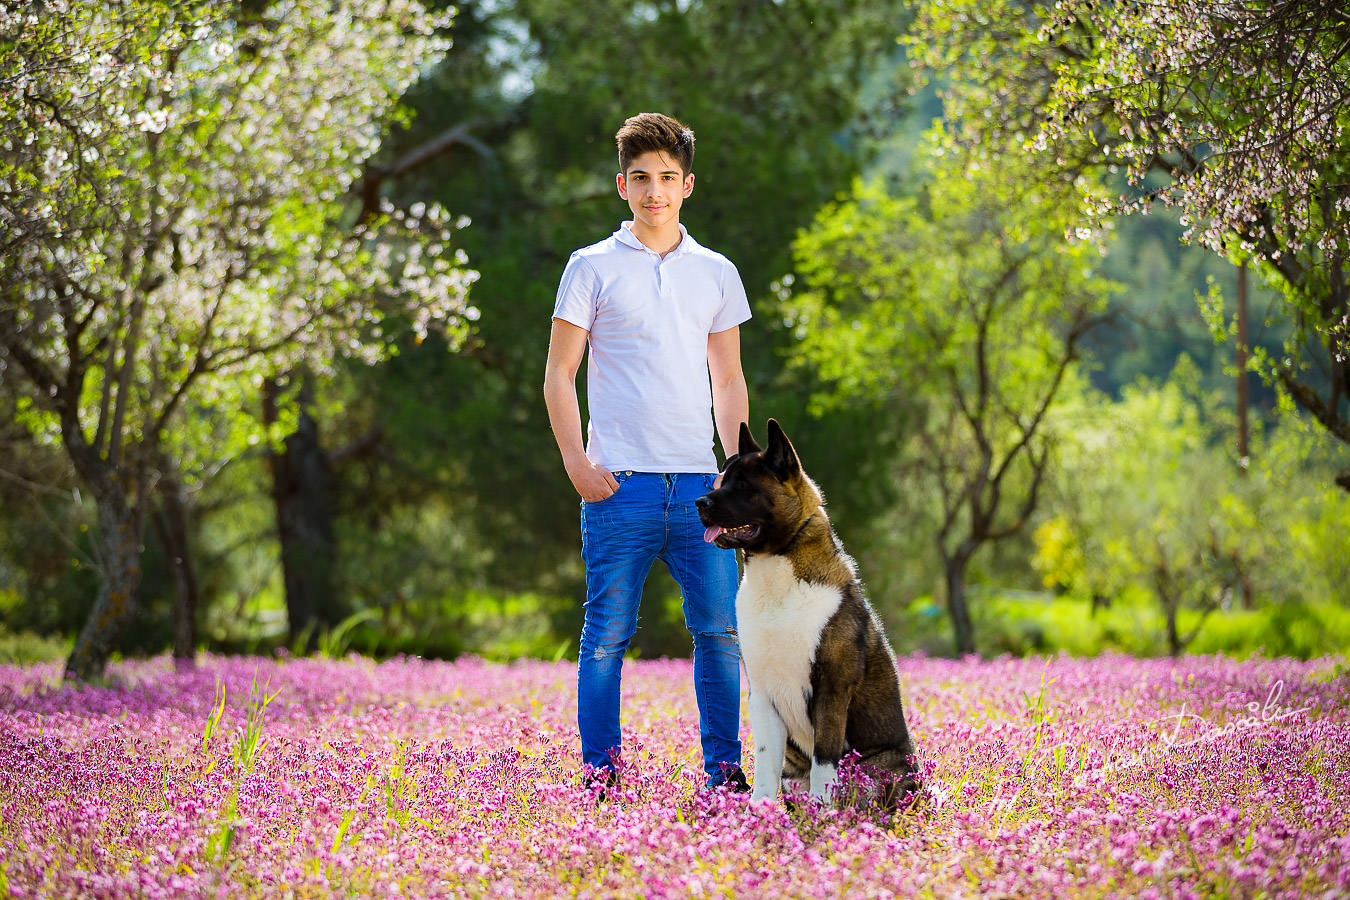 Alex and his Akita dog photographed in Klirou village, Nicosia district, during an amazing family photography in Nicosia by Cyprus Photographer Cristian Dascalu.